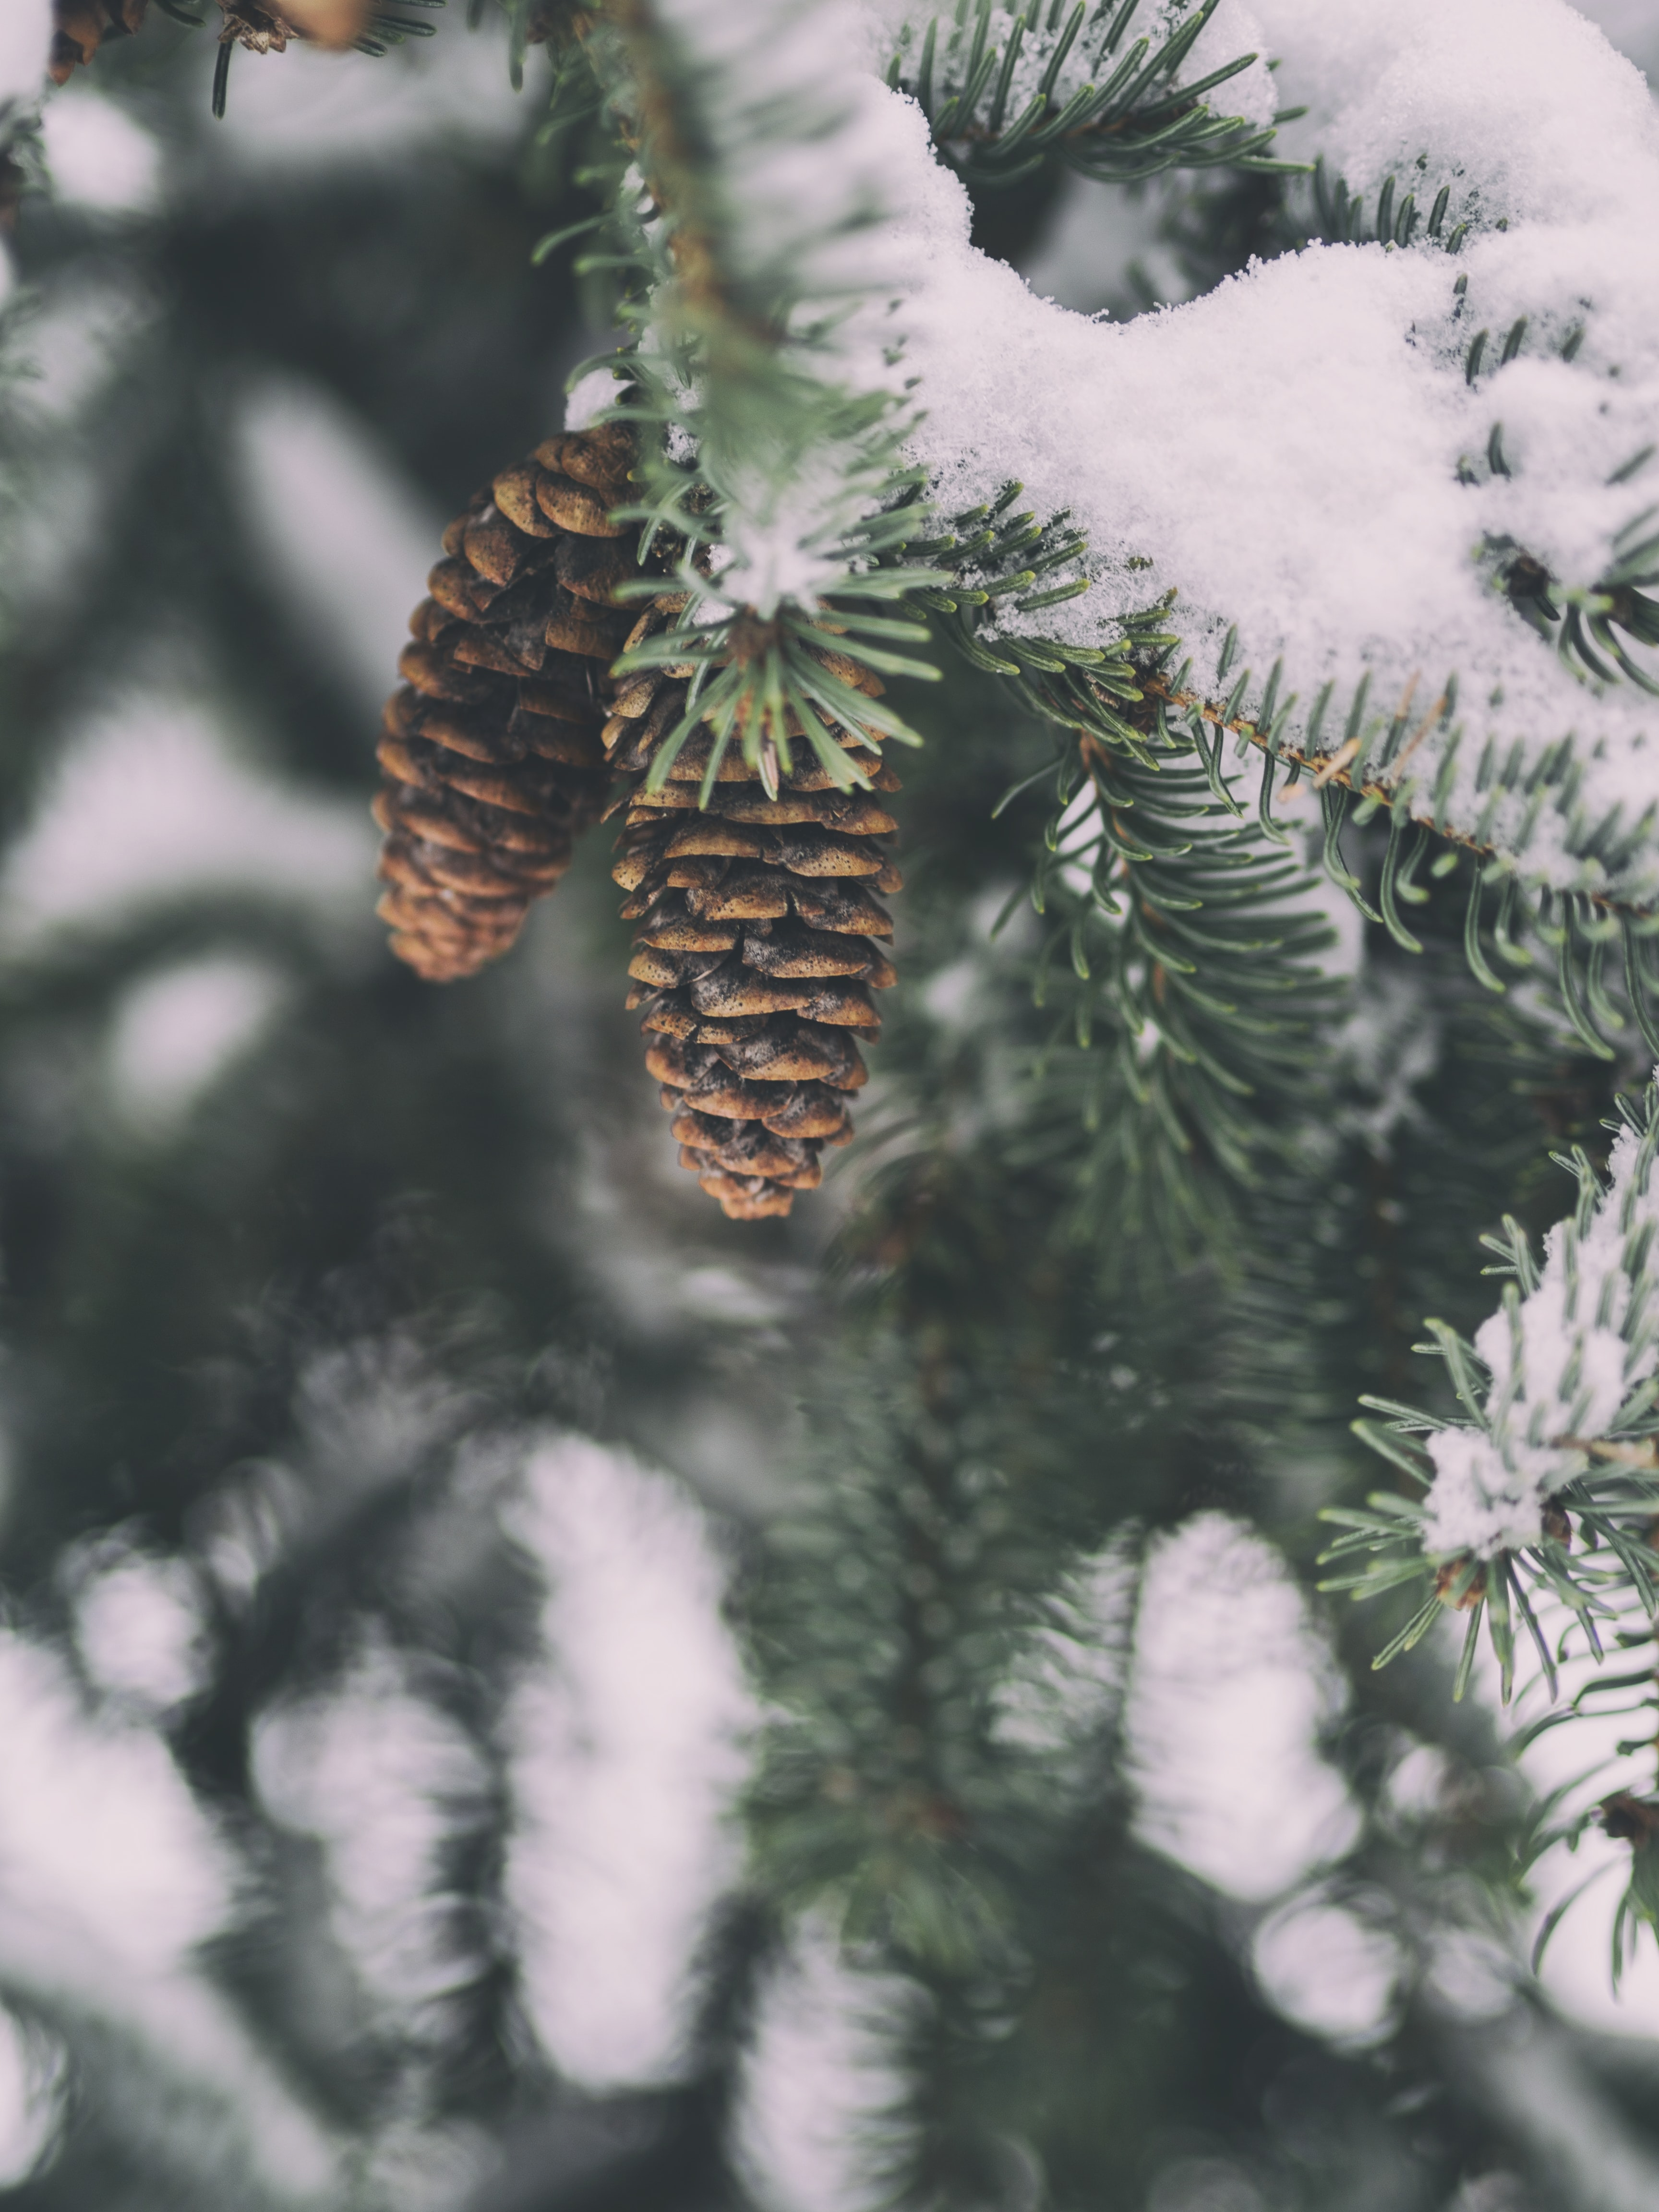 Two pine cones hanging on a snowy pine tree